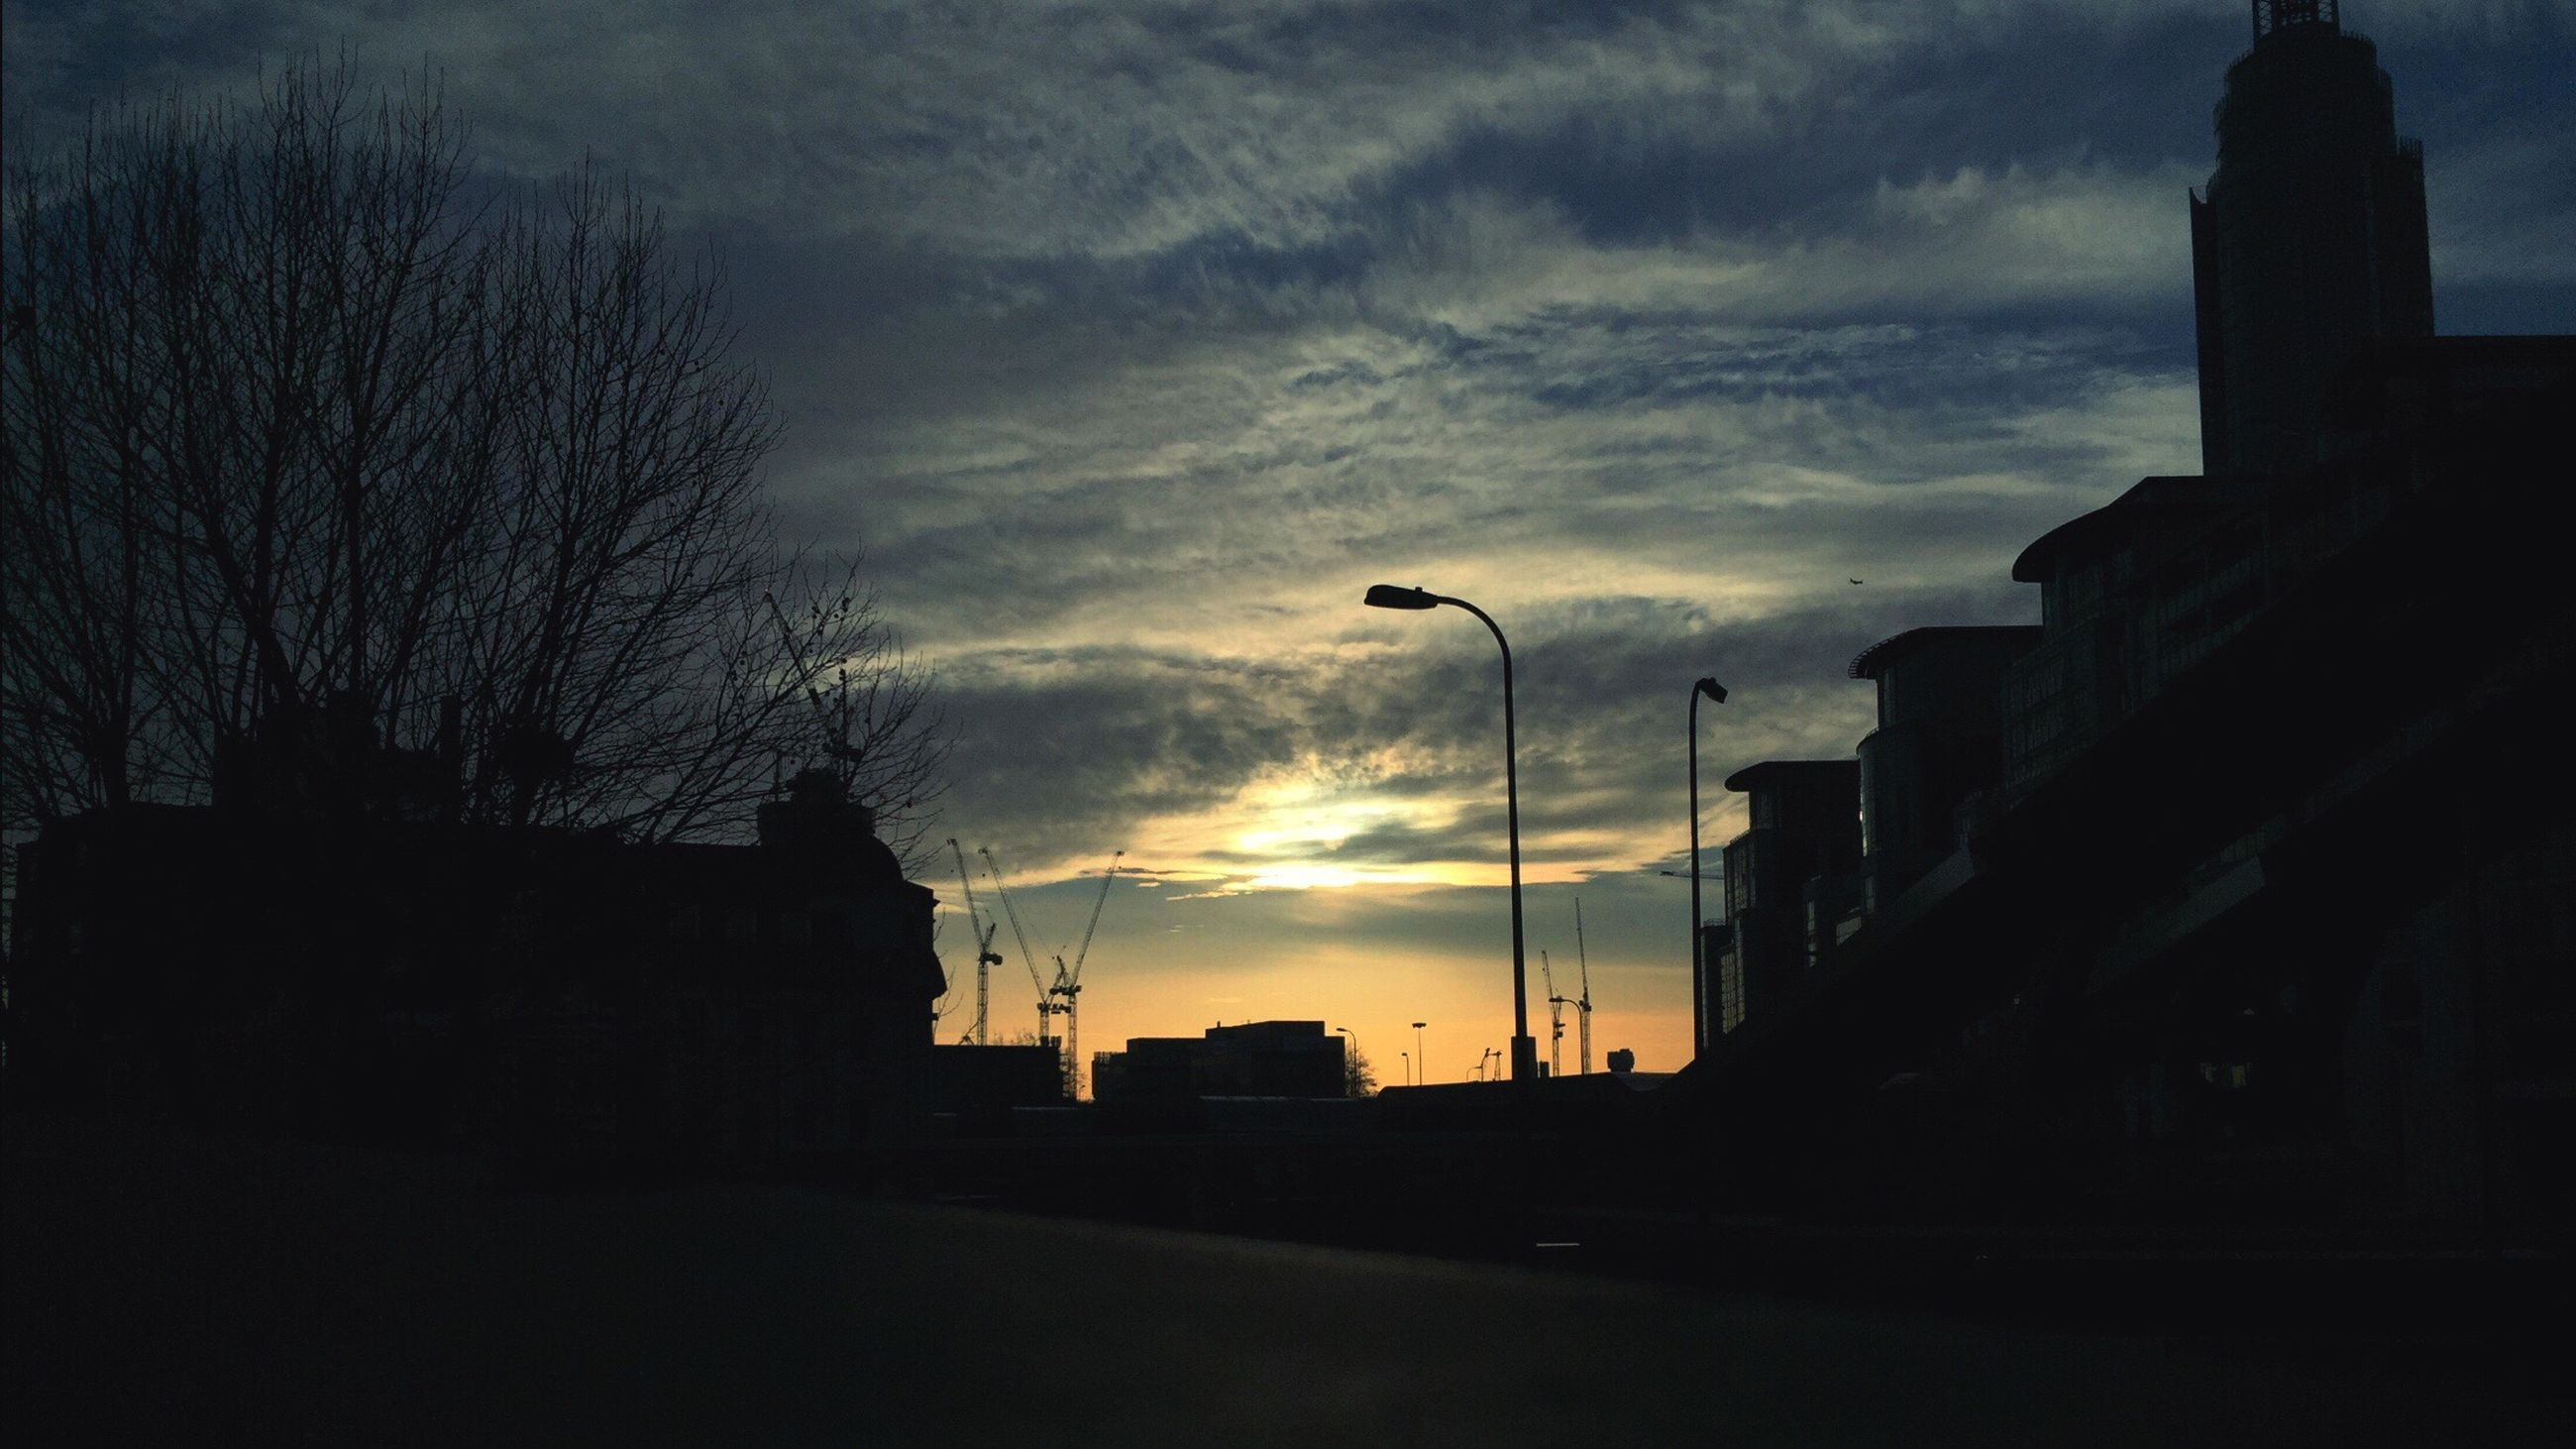 architecture, silhouette, building exterior, built structure, sky, sunset, cloud - sky, street light, dusk, dark, city, low angle view, cloudy, cloud, building, street, outdoors, road, no people, residential structure